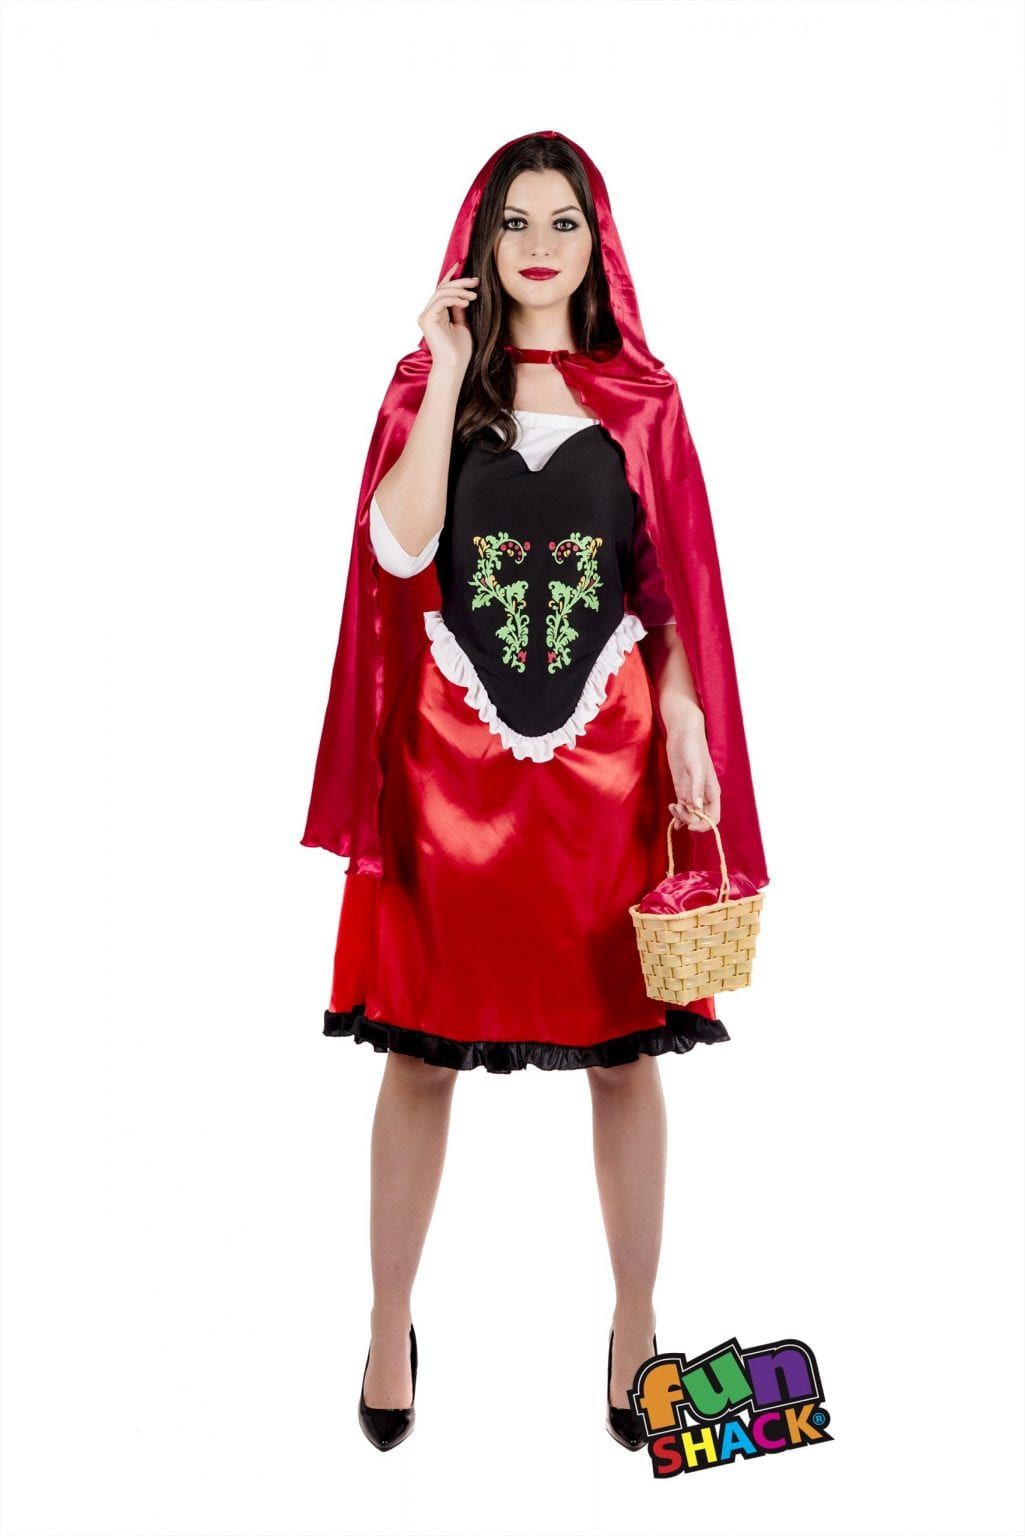 Red Riding Hood Ladies Fancy Dress Costume